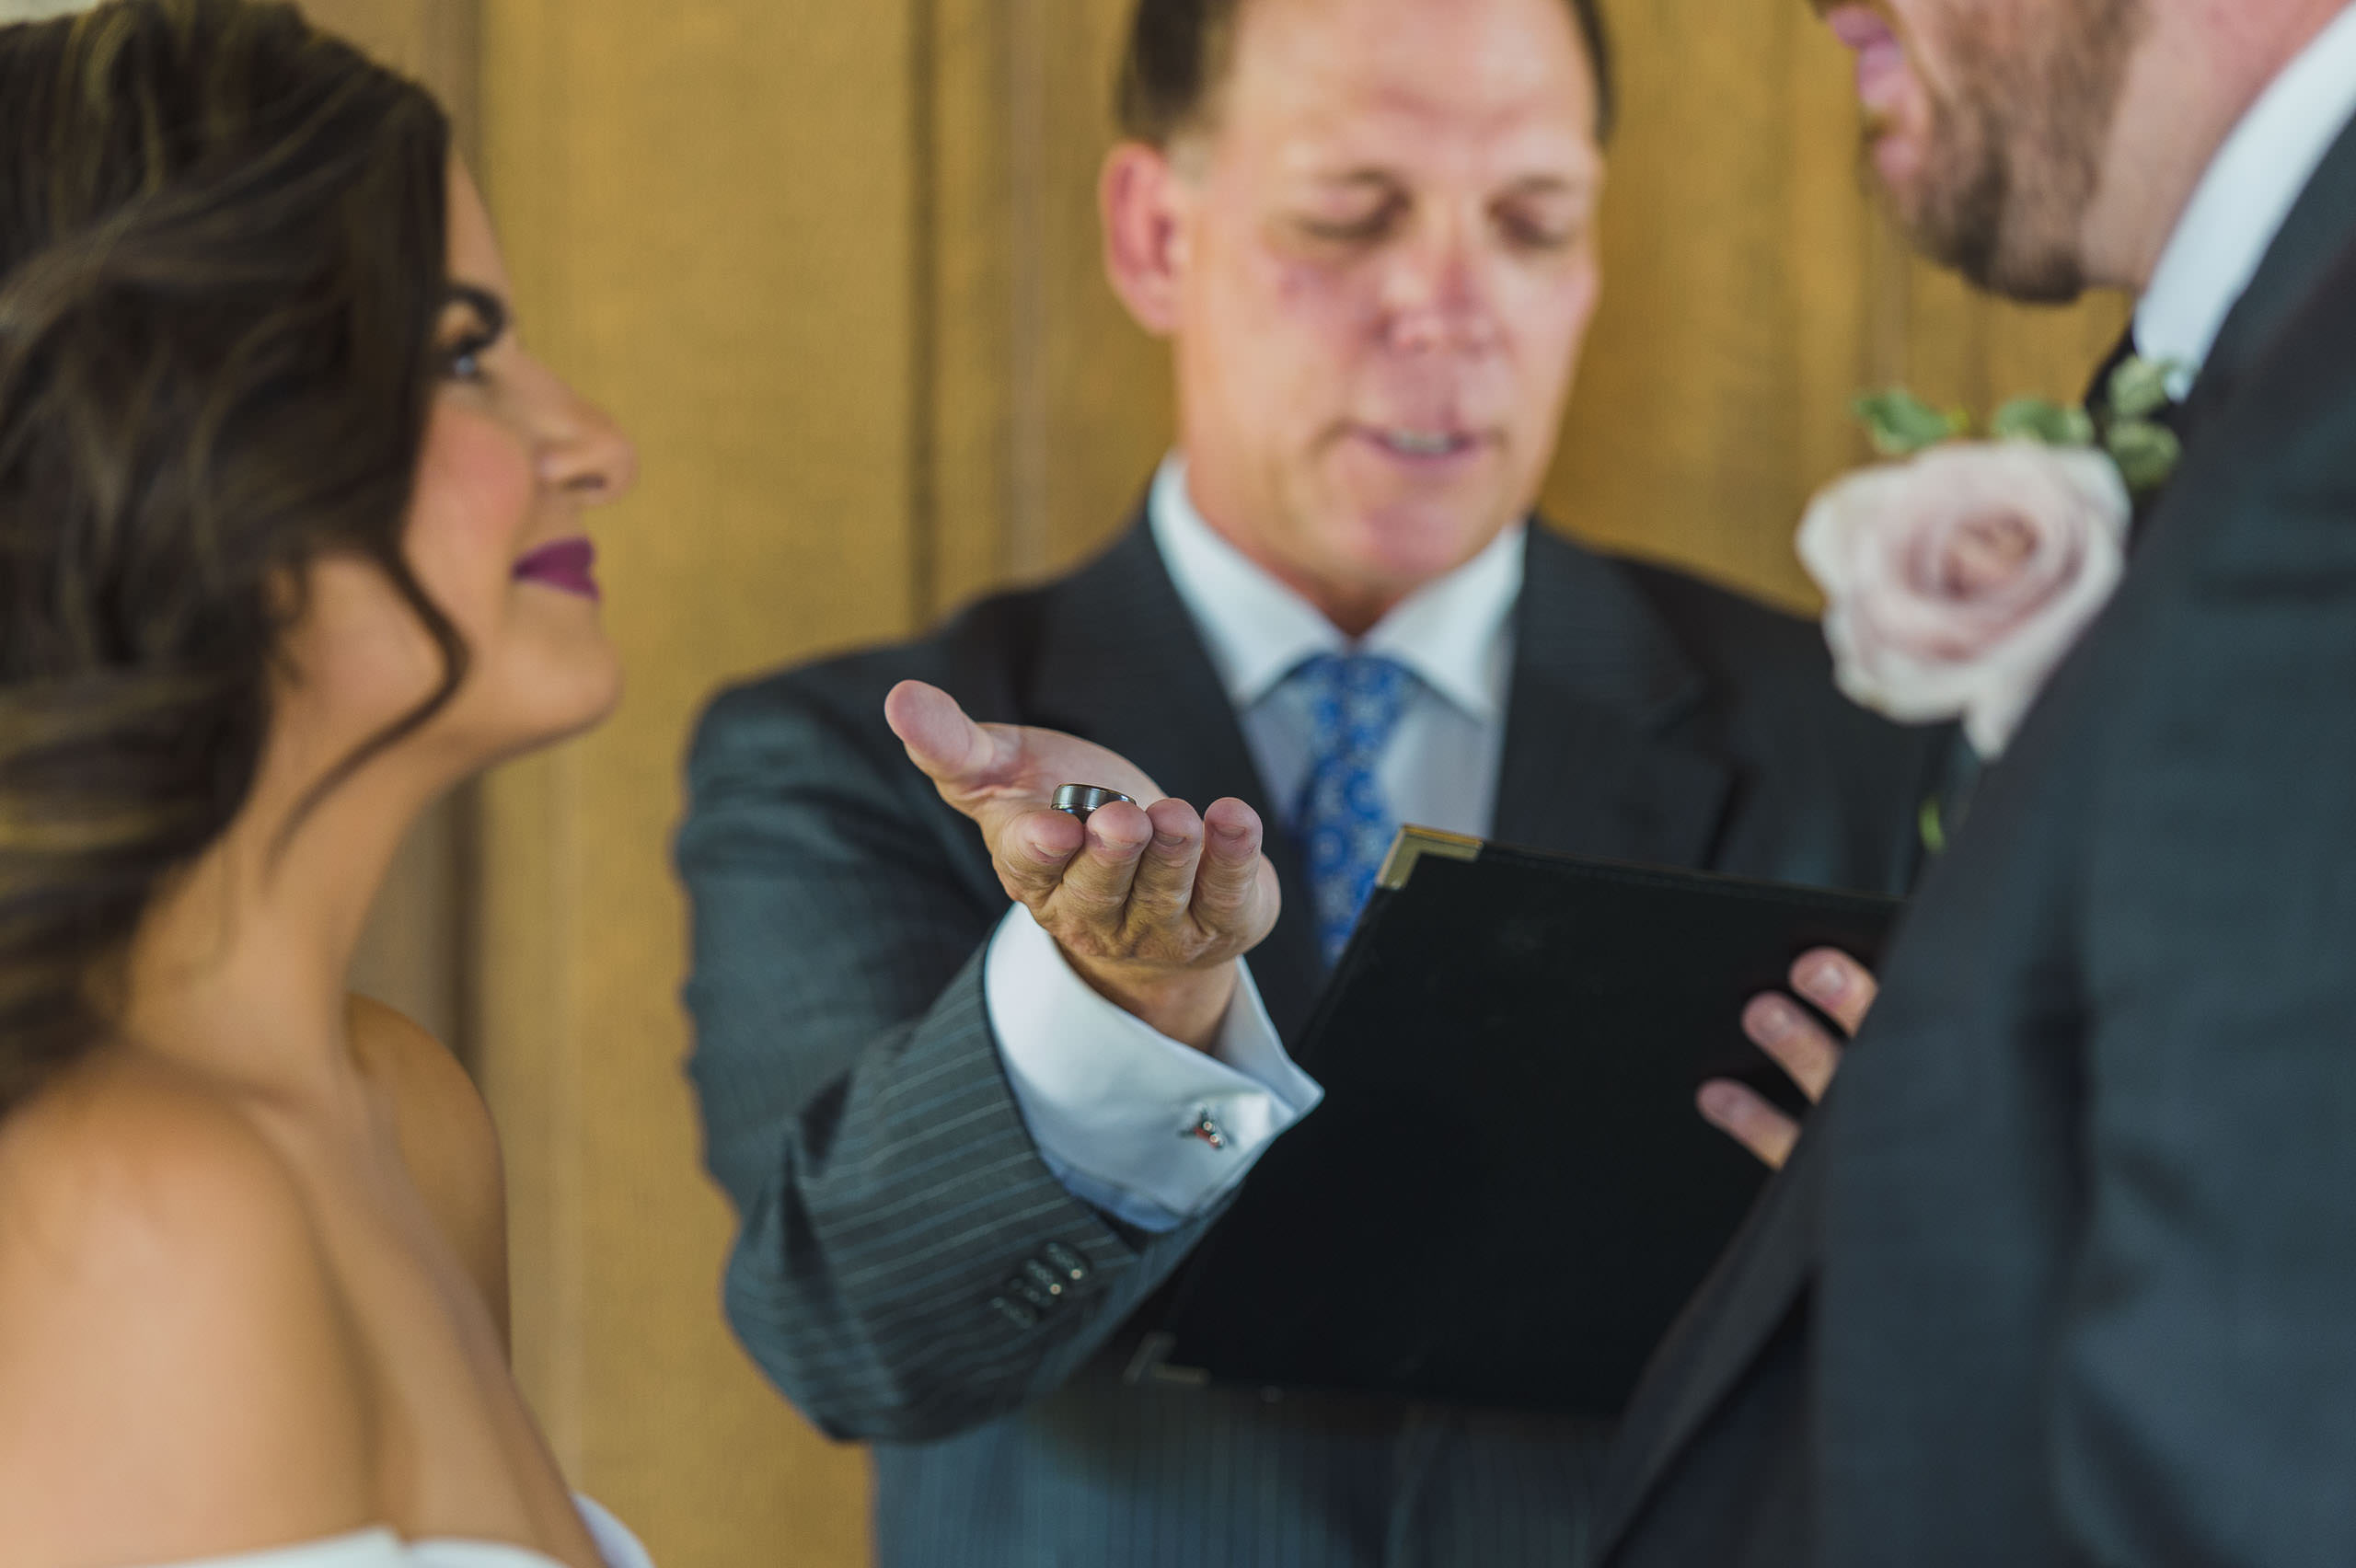 wedding-photography-pricing-exposed-the-truth-about-wedding-photography-costs-san-antonio-wedding-photographers-_4S10230